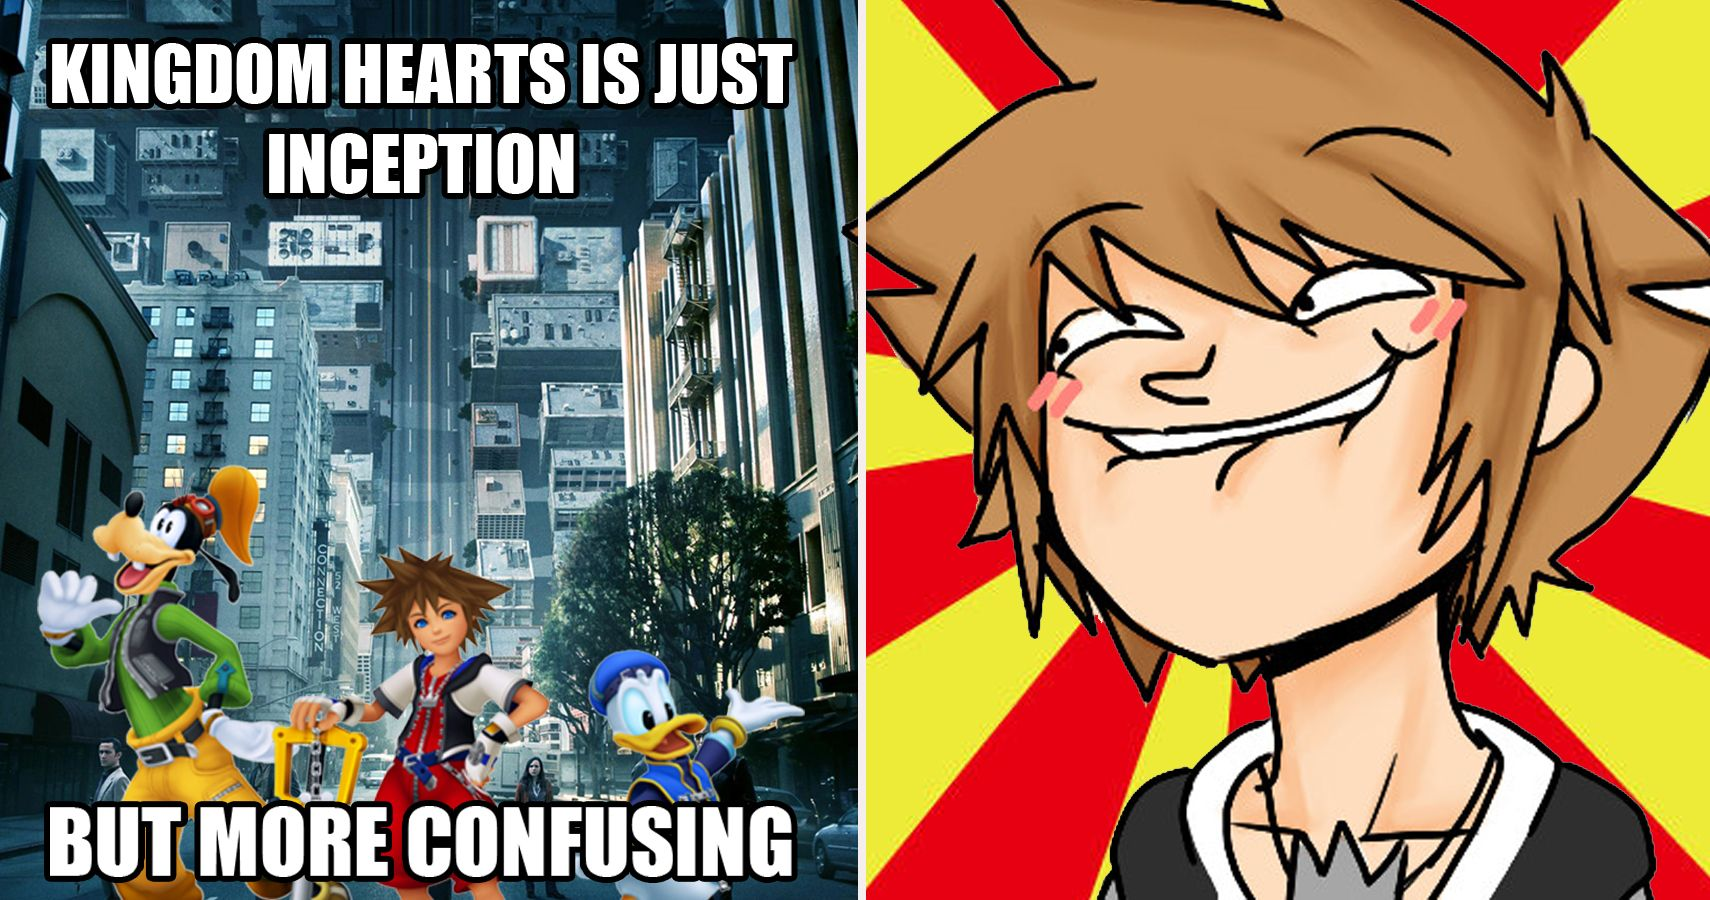 24 Hilarious Kingdom Hearts Memes That Will Leave You Laughing